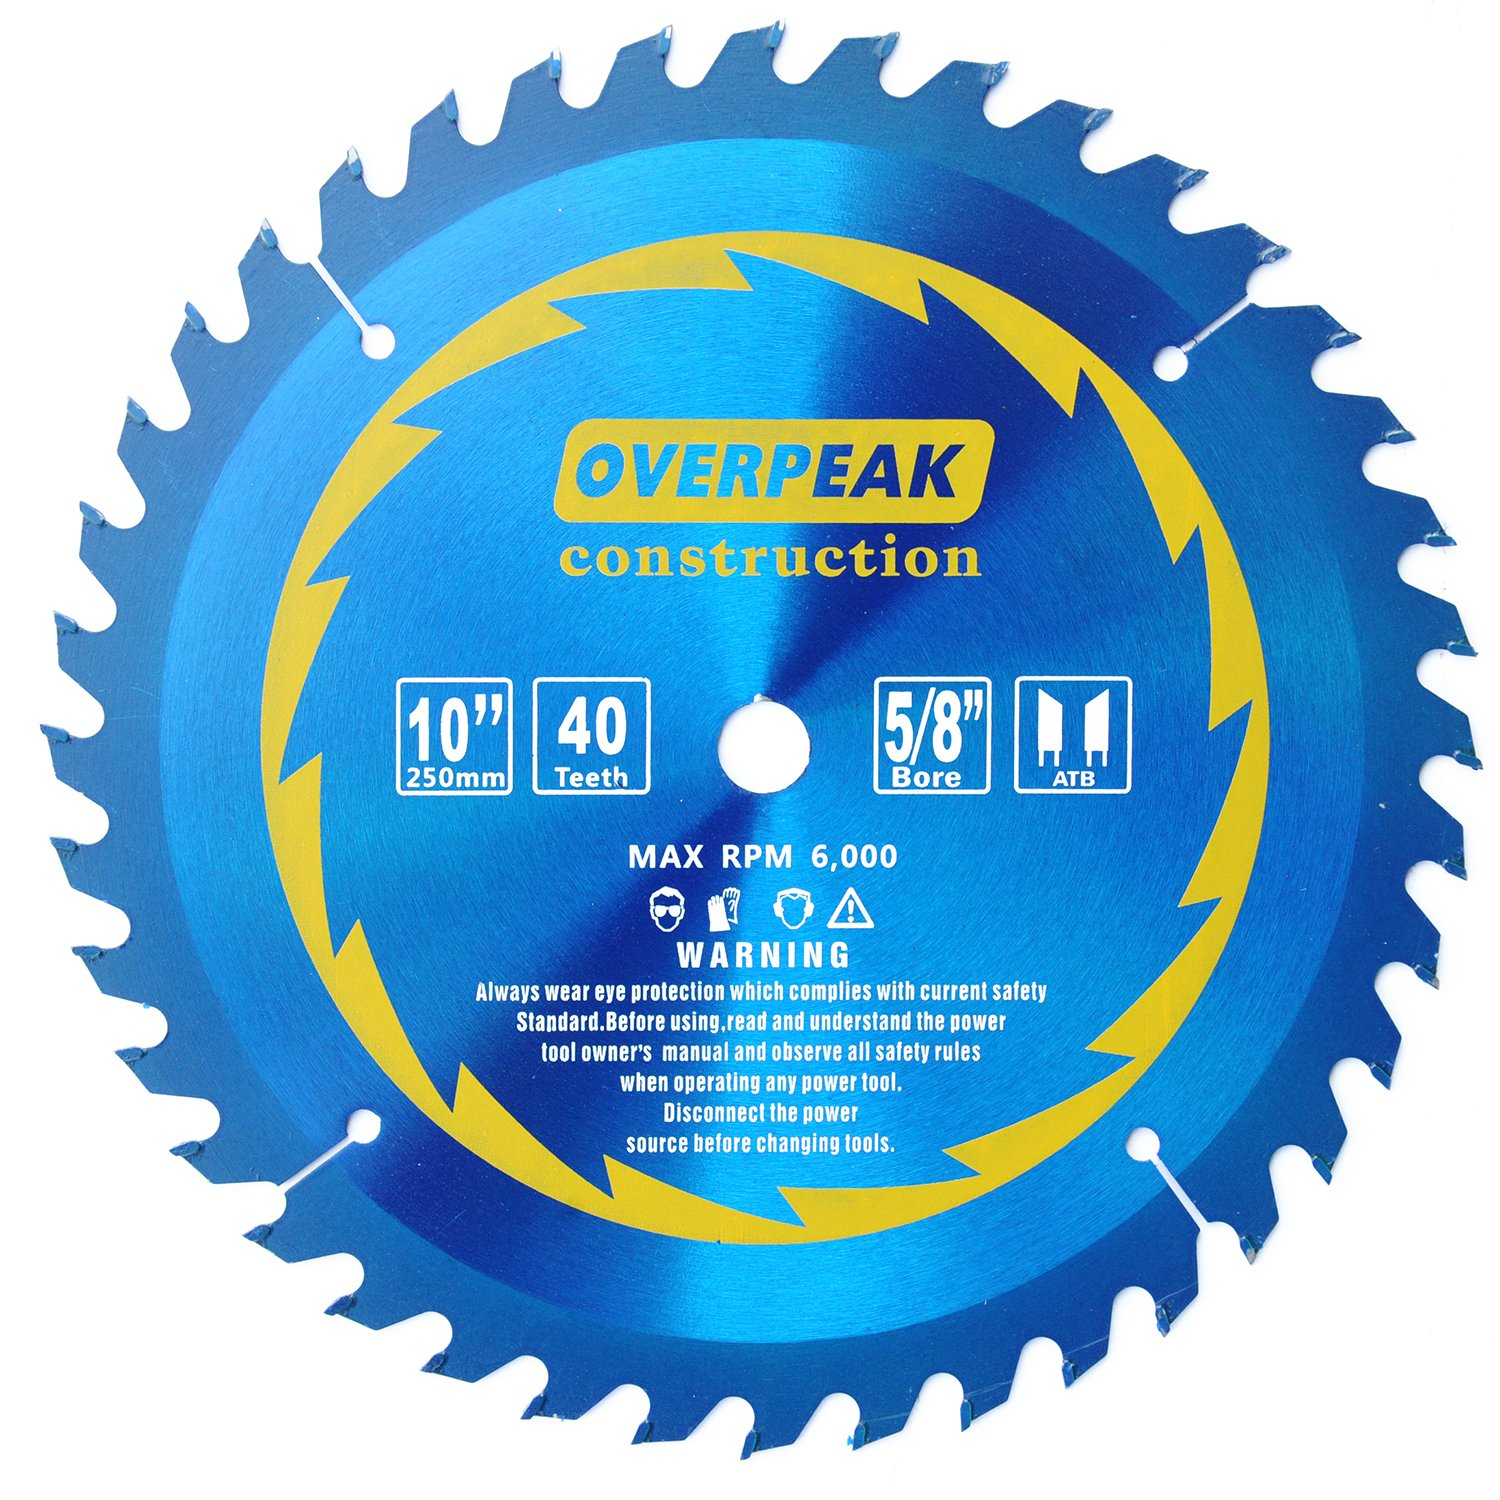 Overpeak 60 tooth diablo ultra fine circular saw blade for wood and overpeak 60 tooth diablo ultra fine circular saw blade for wood and wood composites 12 inch amazon greentooth Image collections